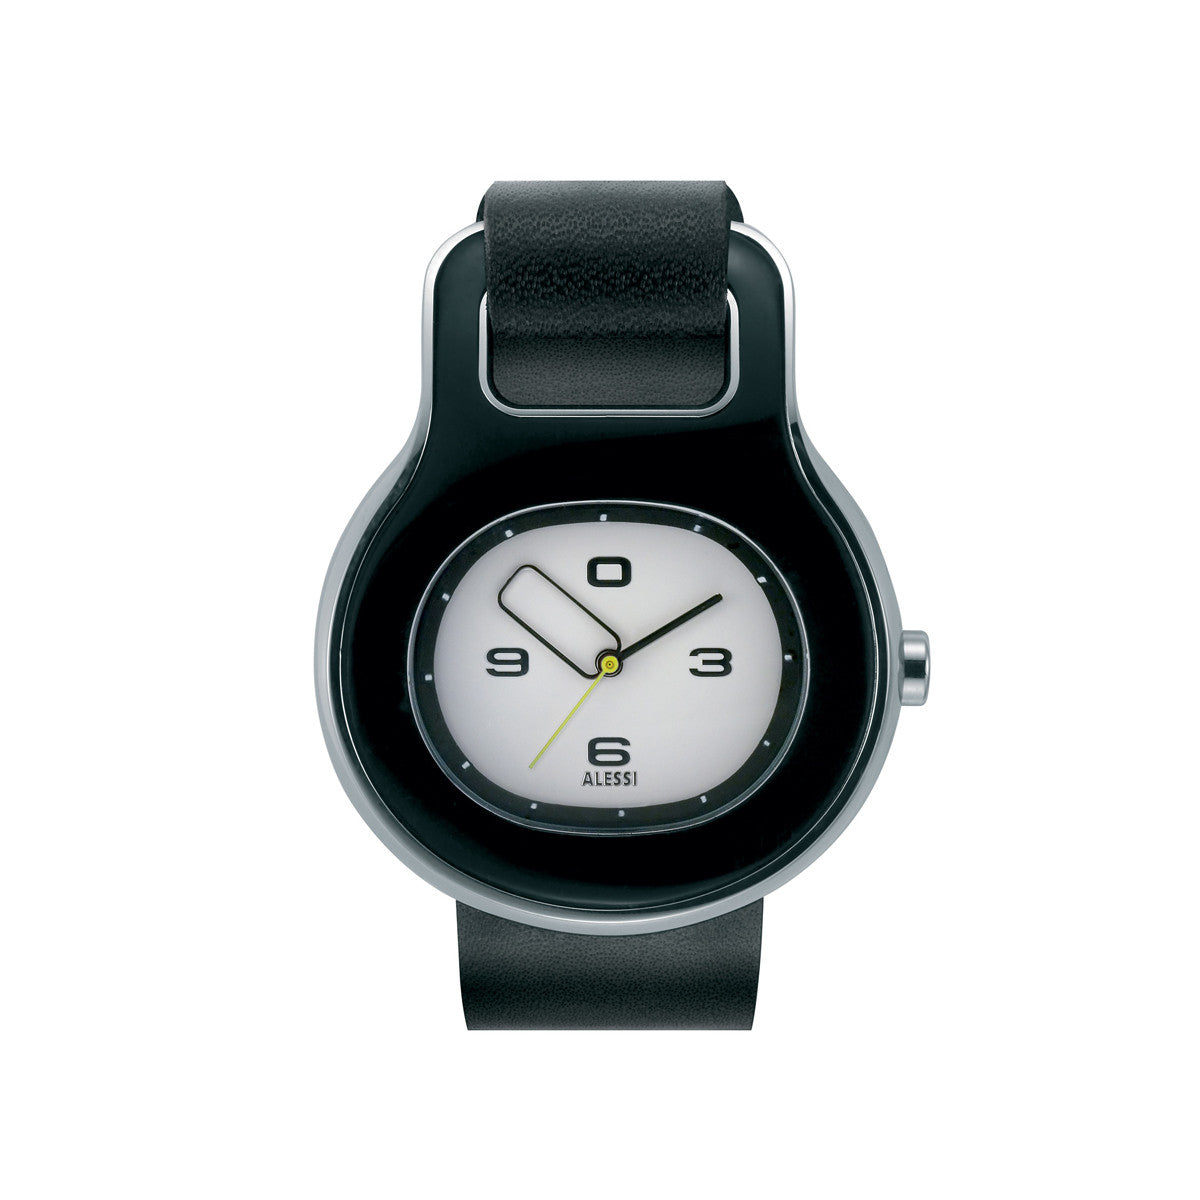 replacement strap for buckle watch black by alessi watches  - replacement strap for buckle watch black by alessi watches